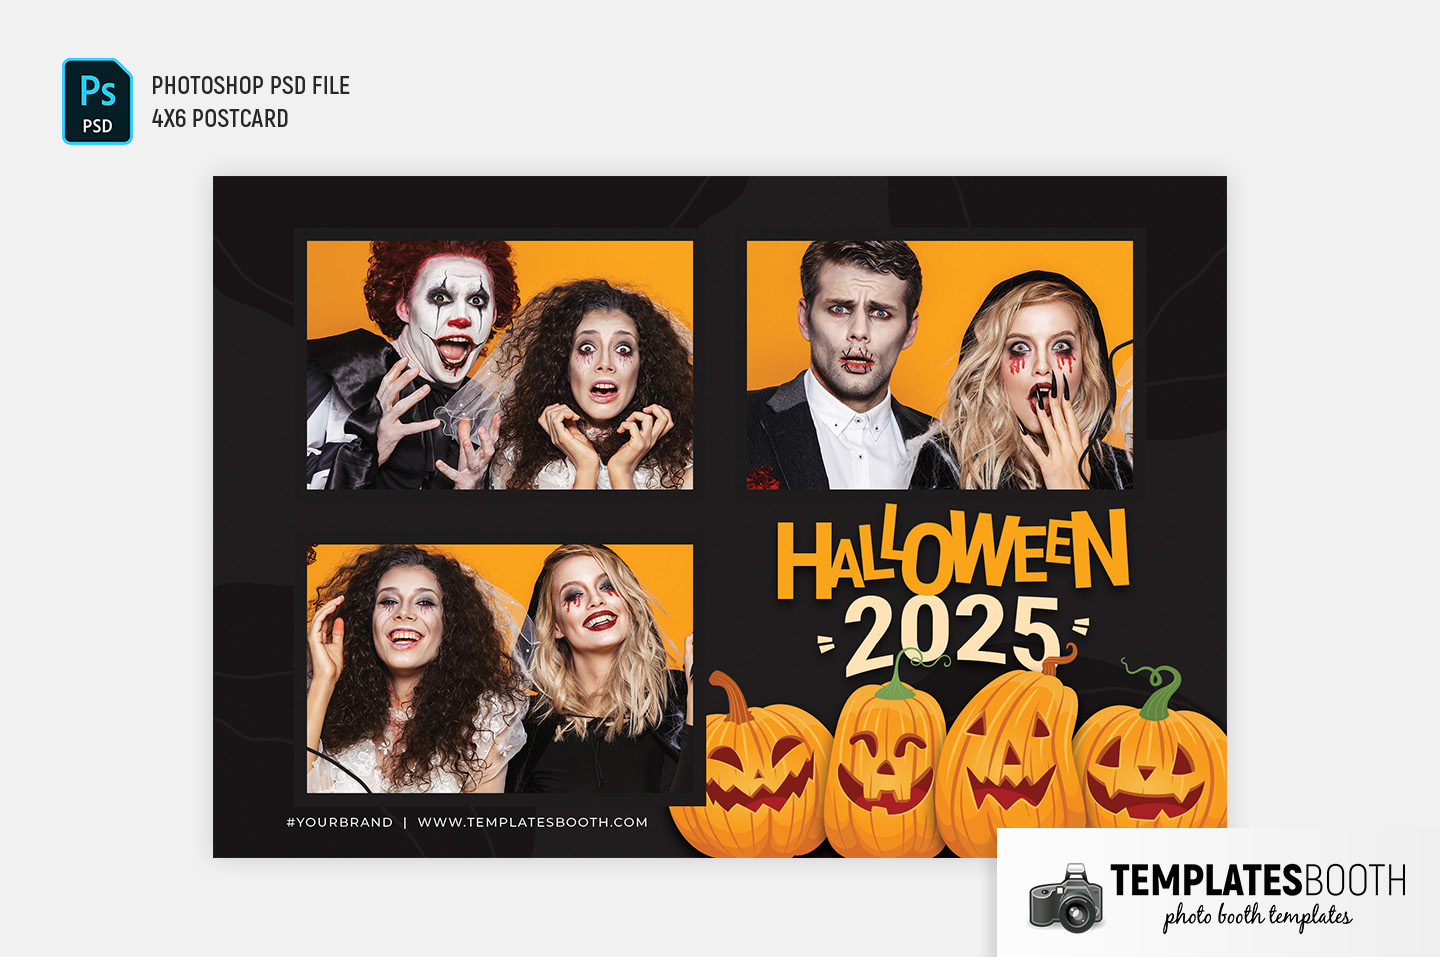 Halloween Photo Booth Template (4x6 Landscape)